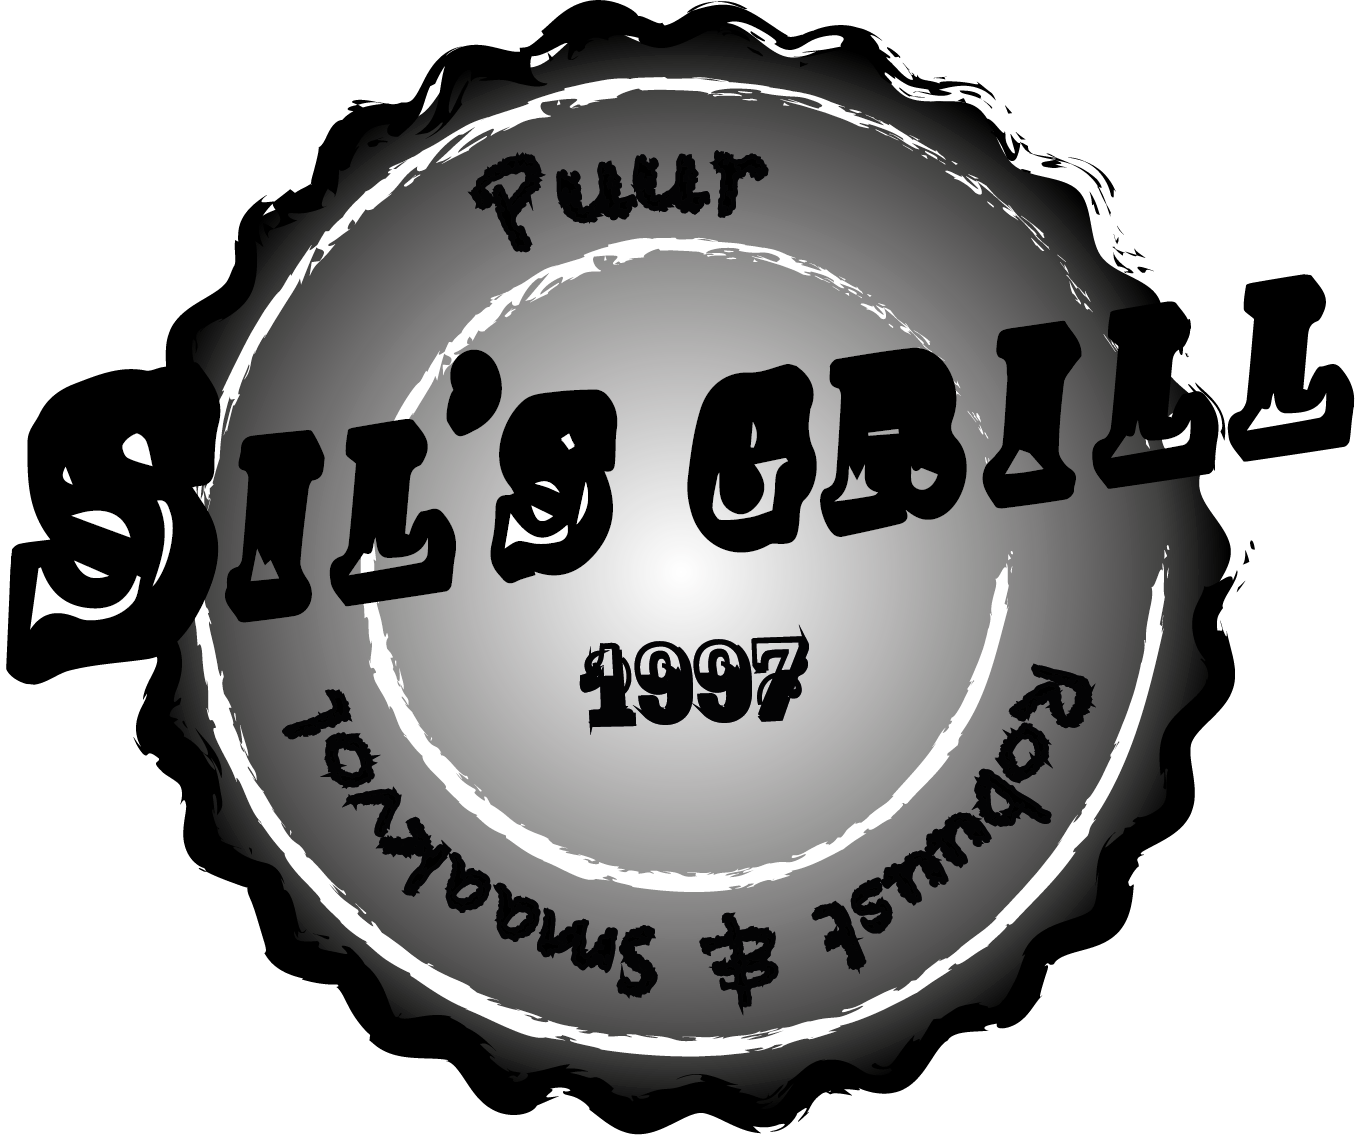 Sil's Grill